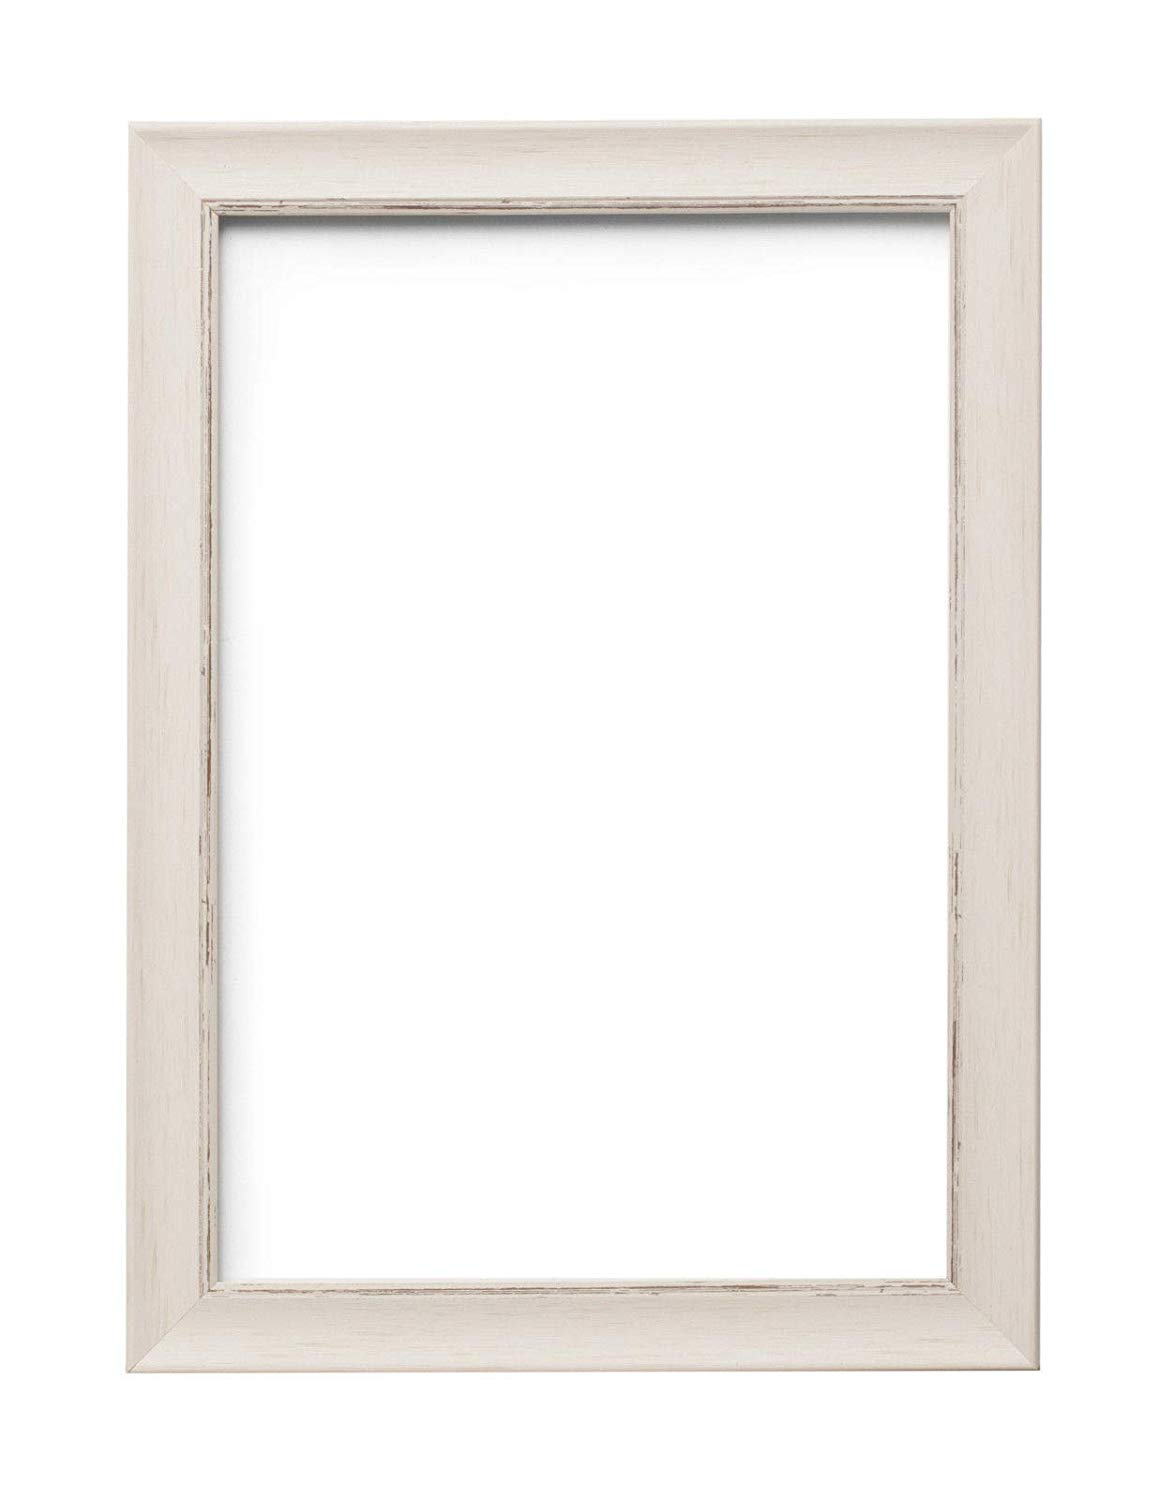 "Paintings Frames Sc1Ornate Shabby Chic Swept Picture Frame/Photo Frame/Poster Frame With An MDF Backing Board Hang-With Styrene Shatterproof Perspex Sheet Pictures 14""X11"" White Distressed"